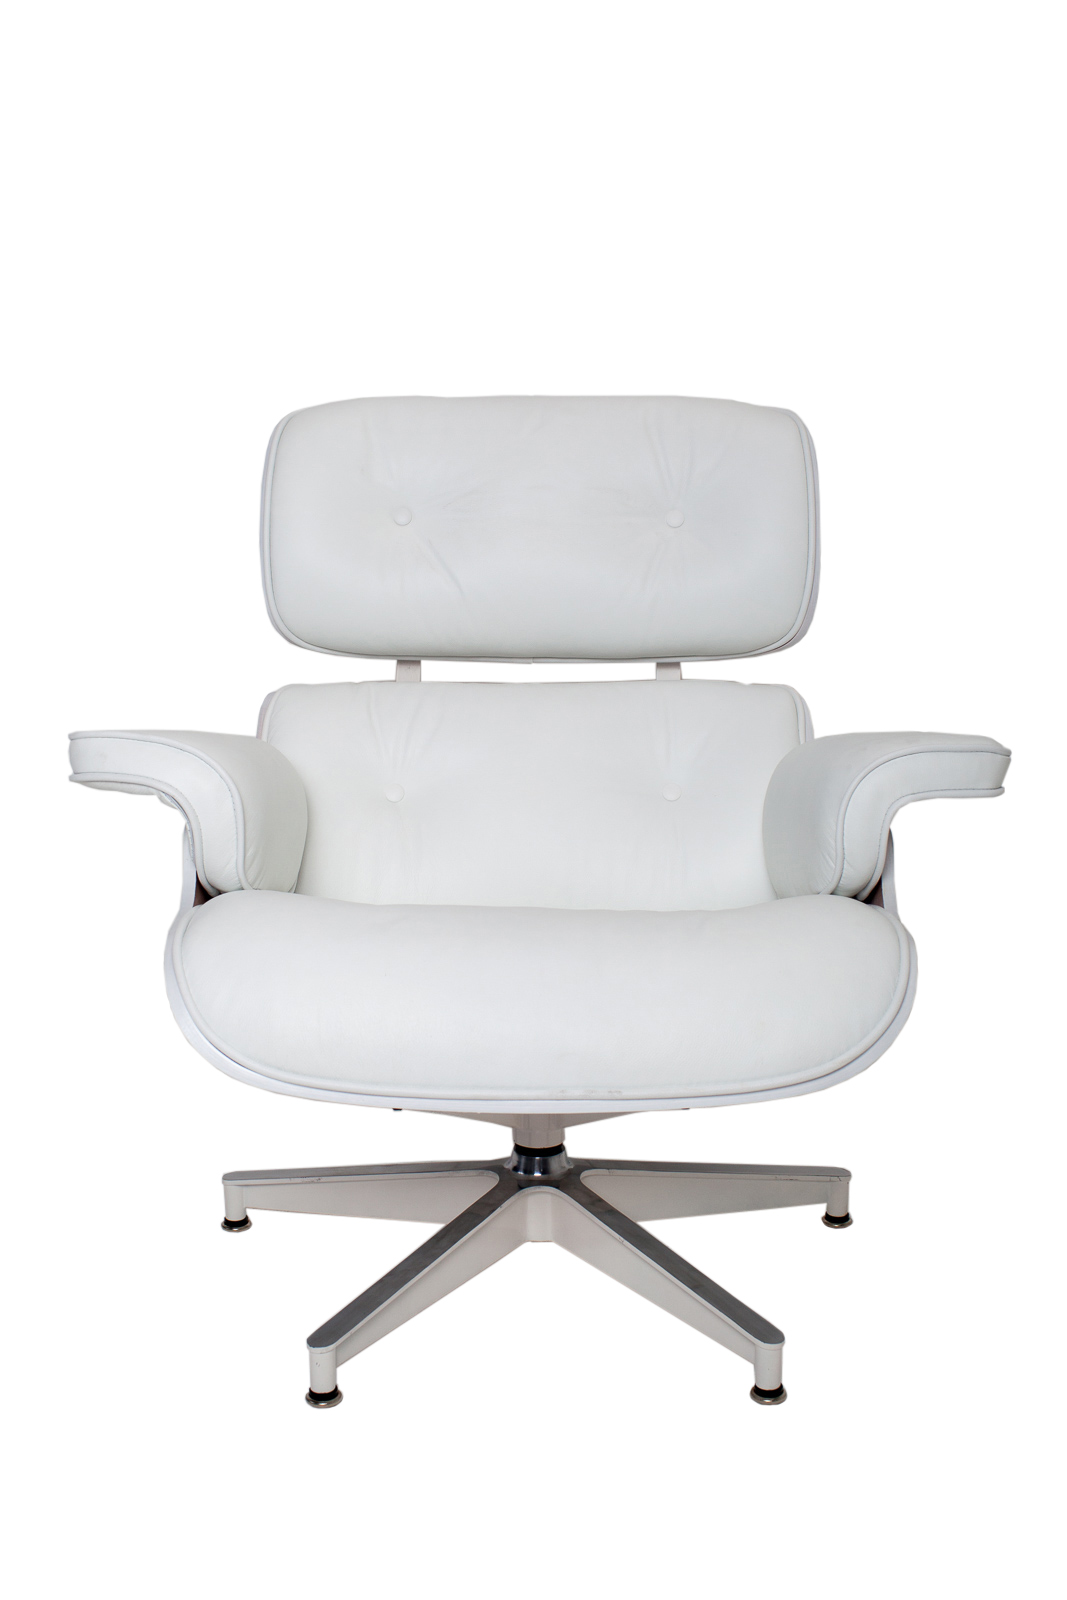 new white leather white wood eames style lounge chair ottoman set